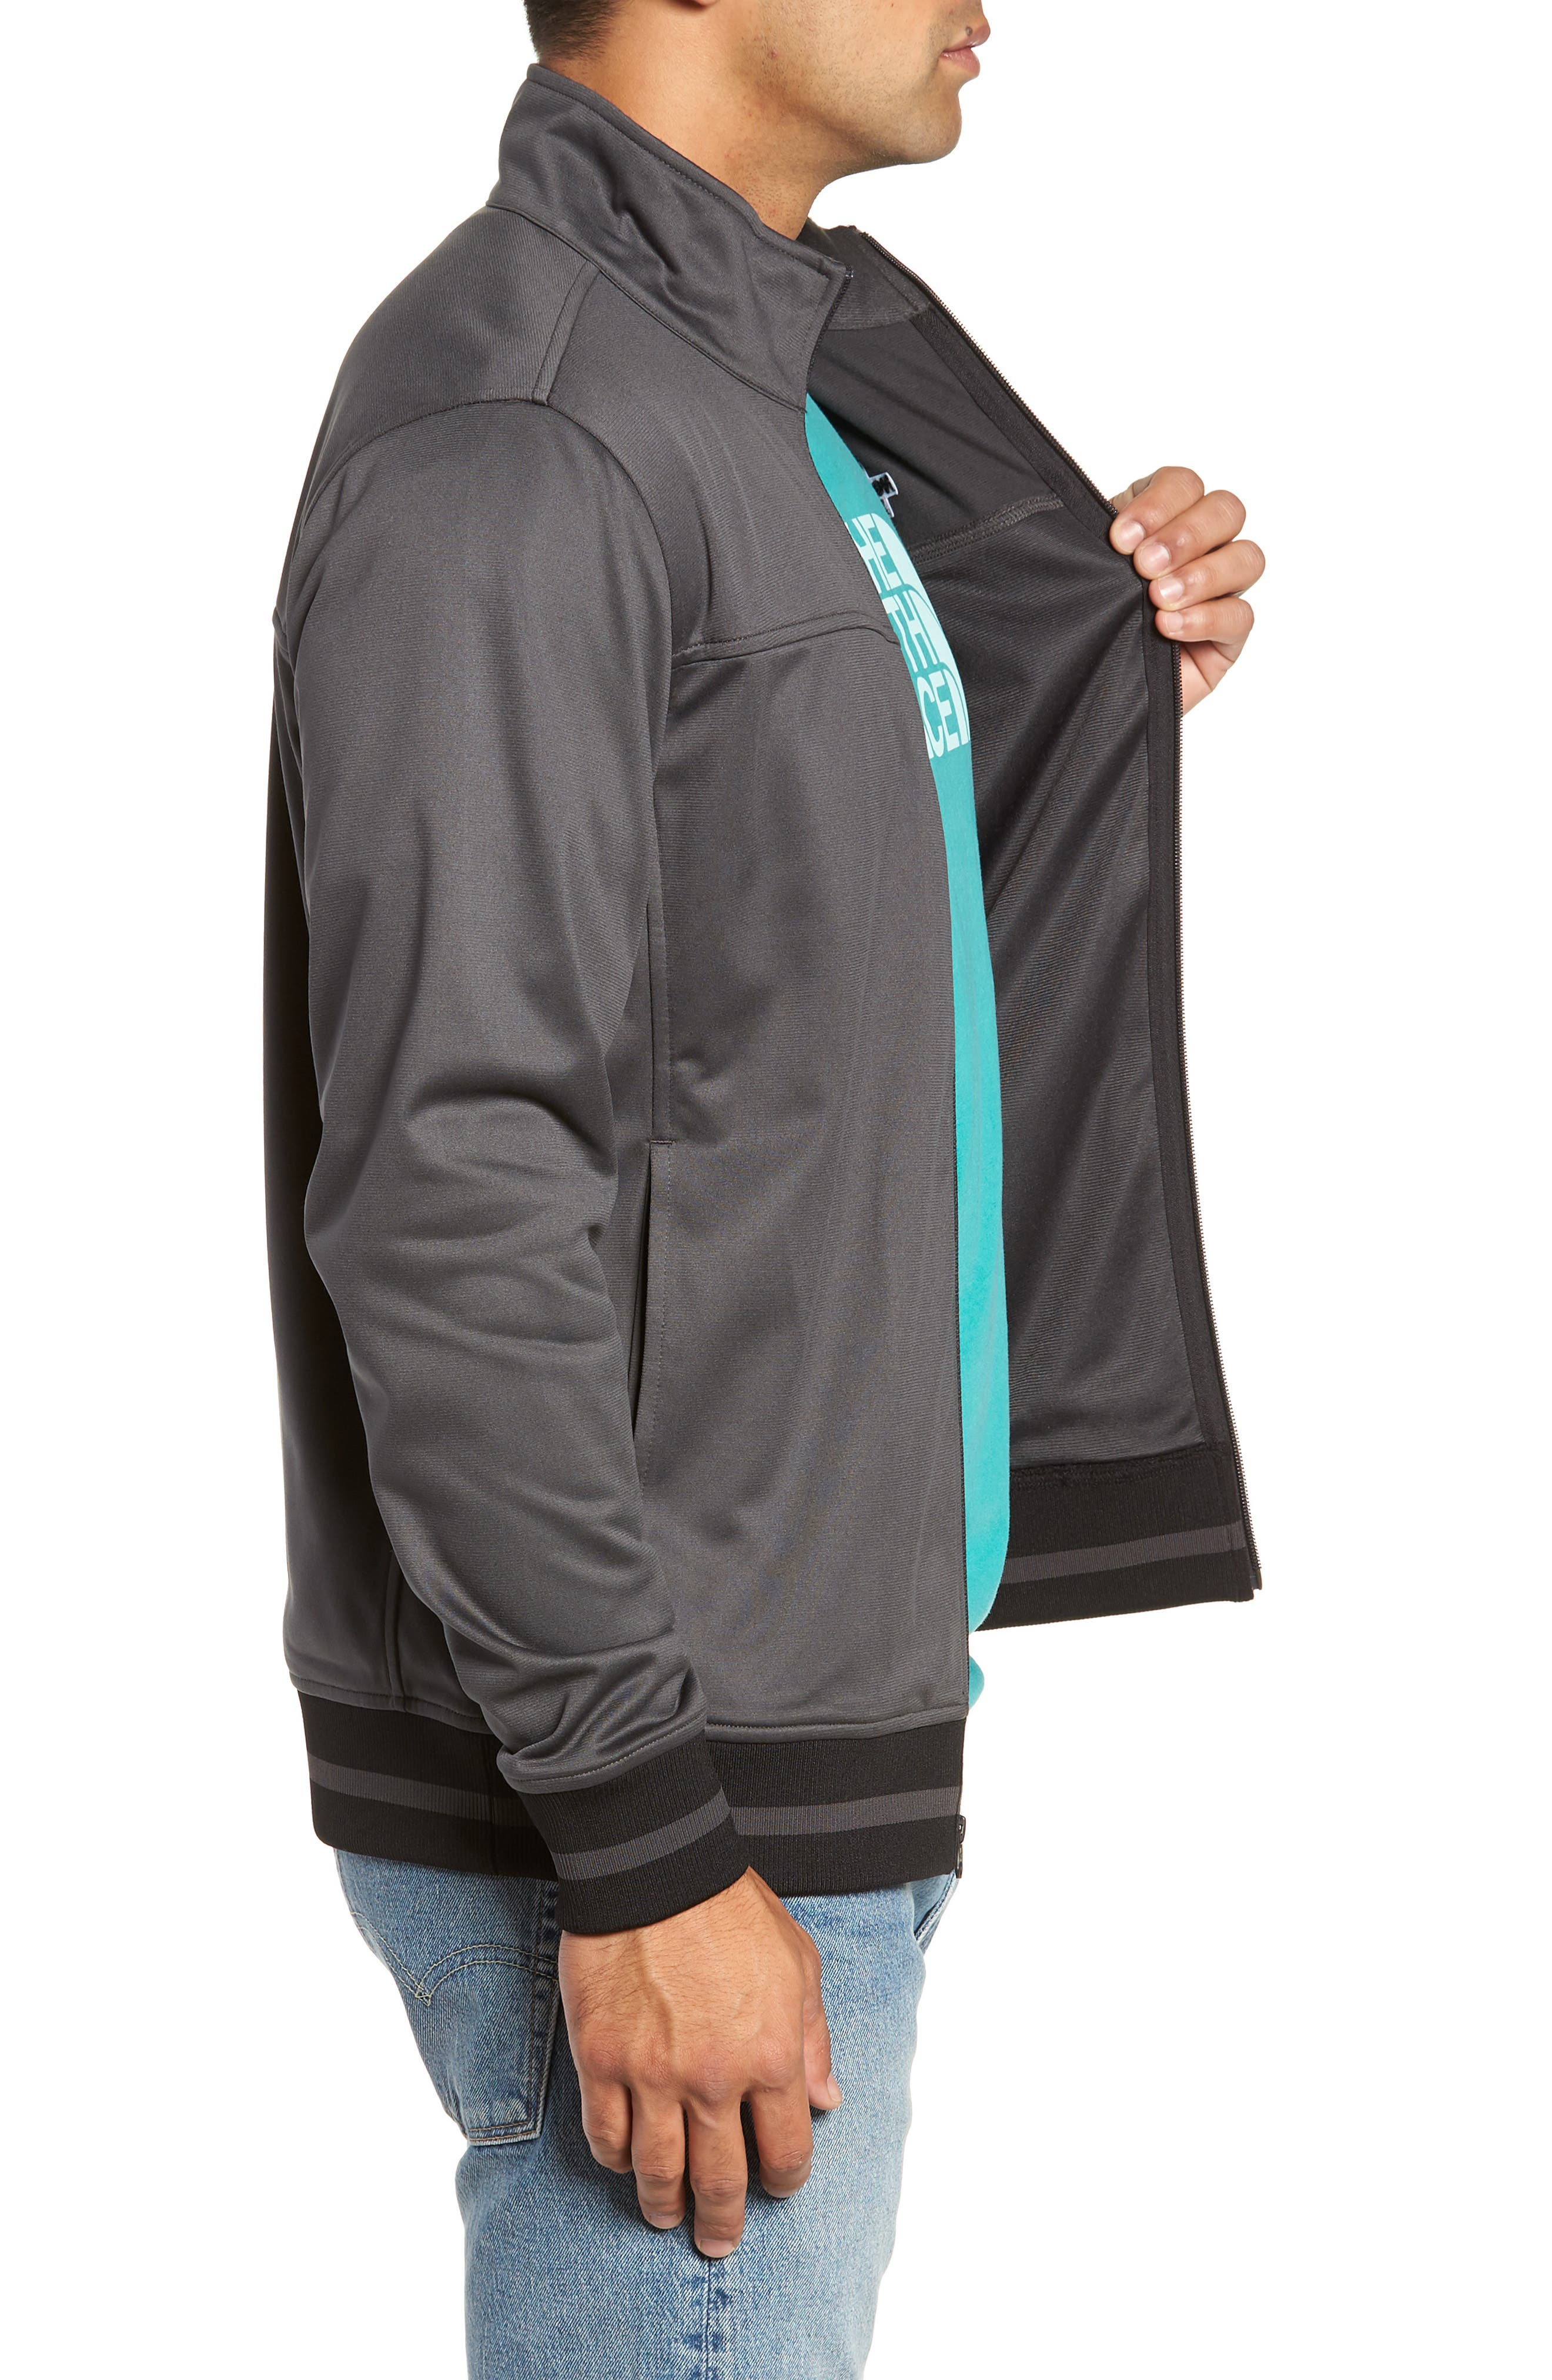 Alphabet City Track Jacket,                             Alternate thumbnail 3, color,                             ASPHALT GREY